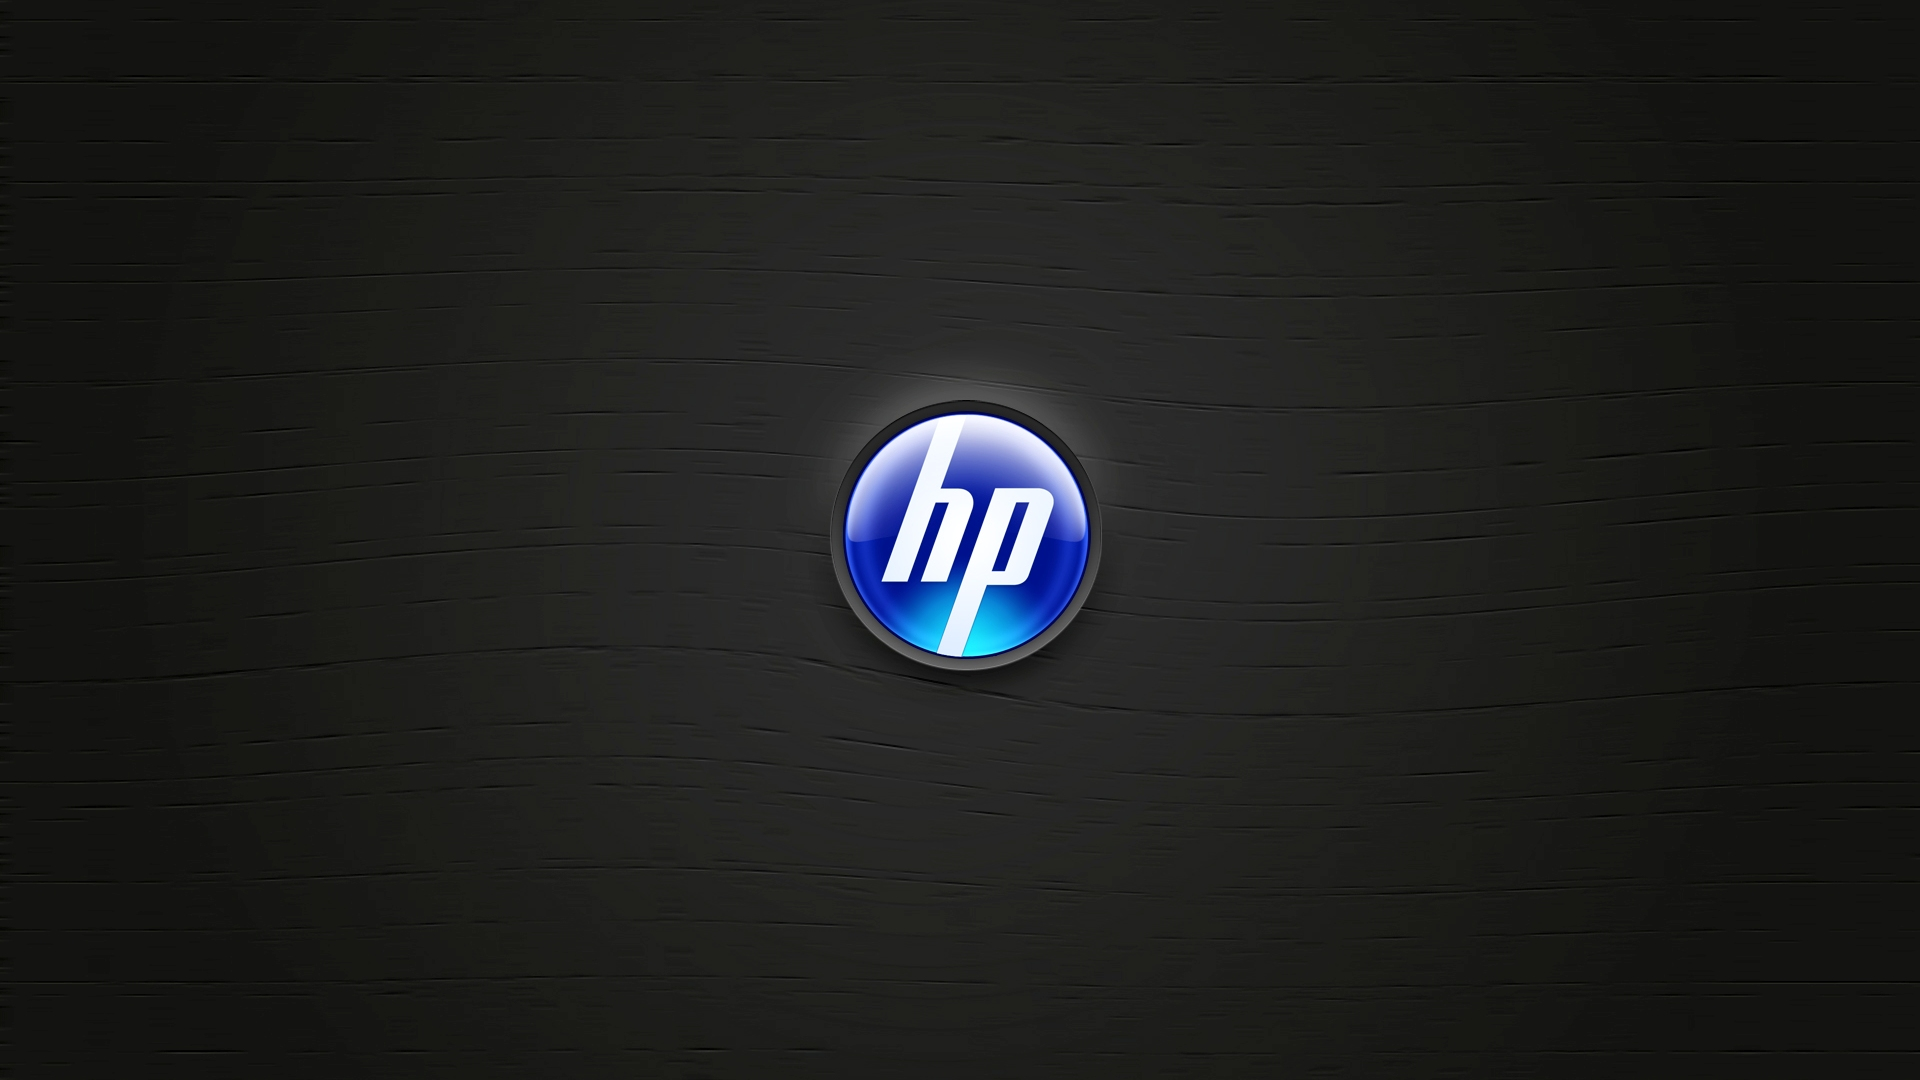 hp wallpaper 023